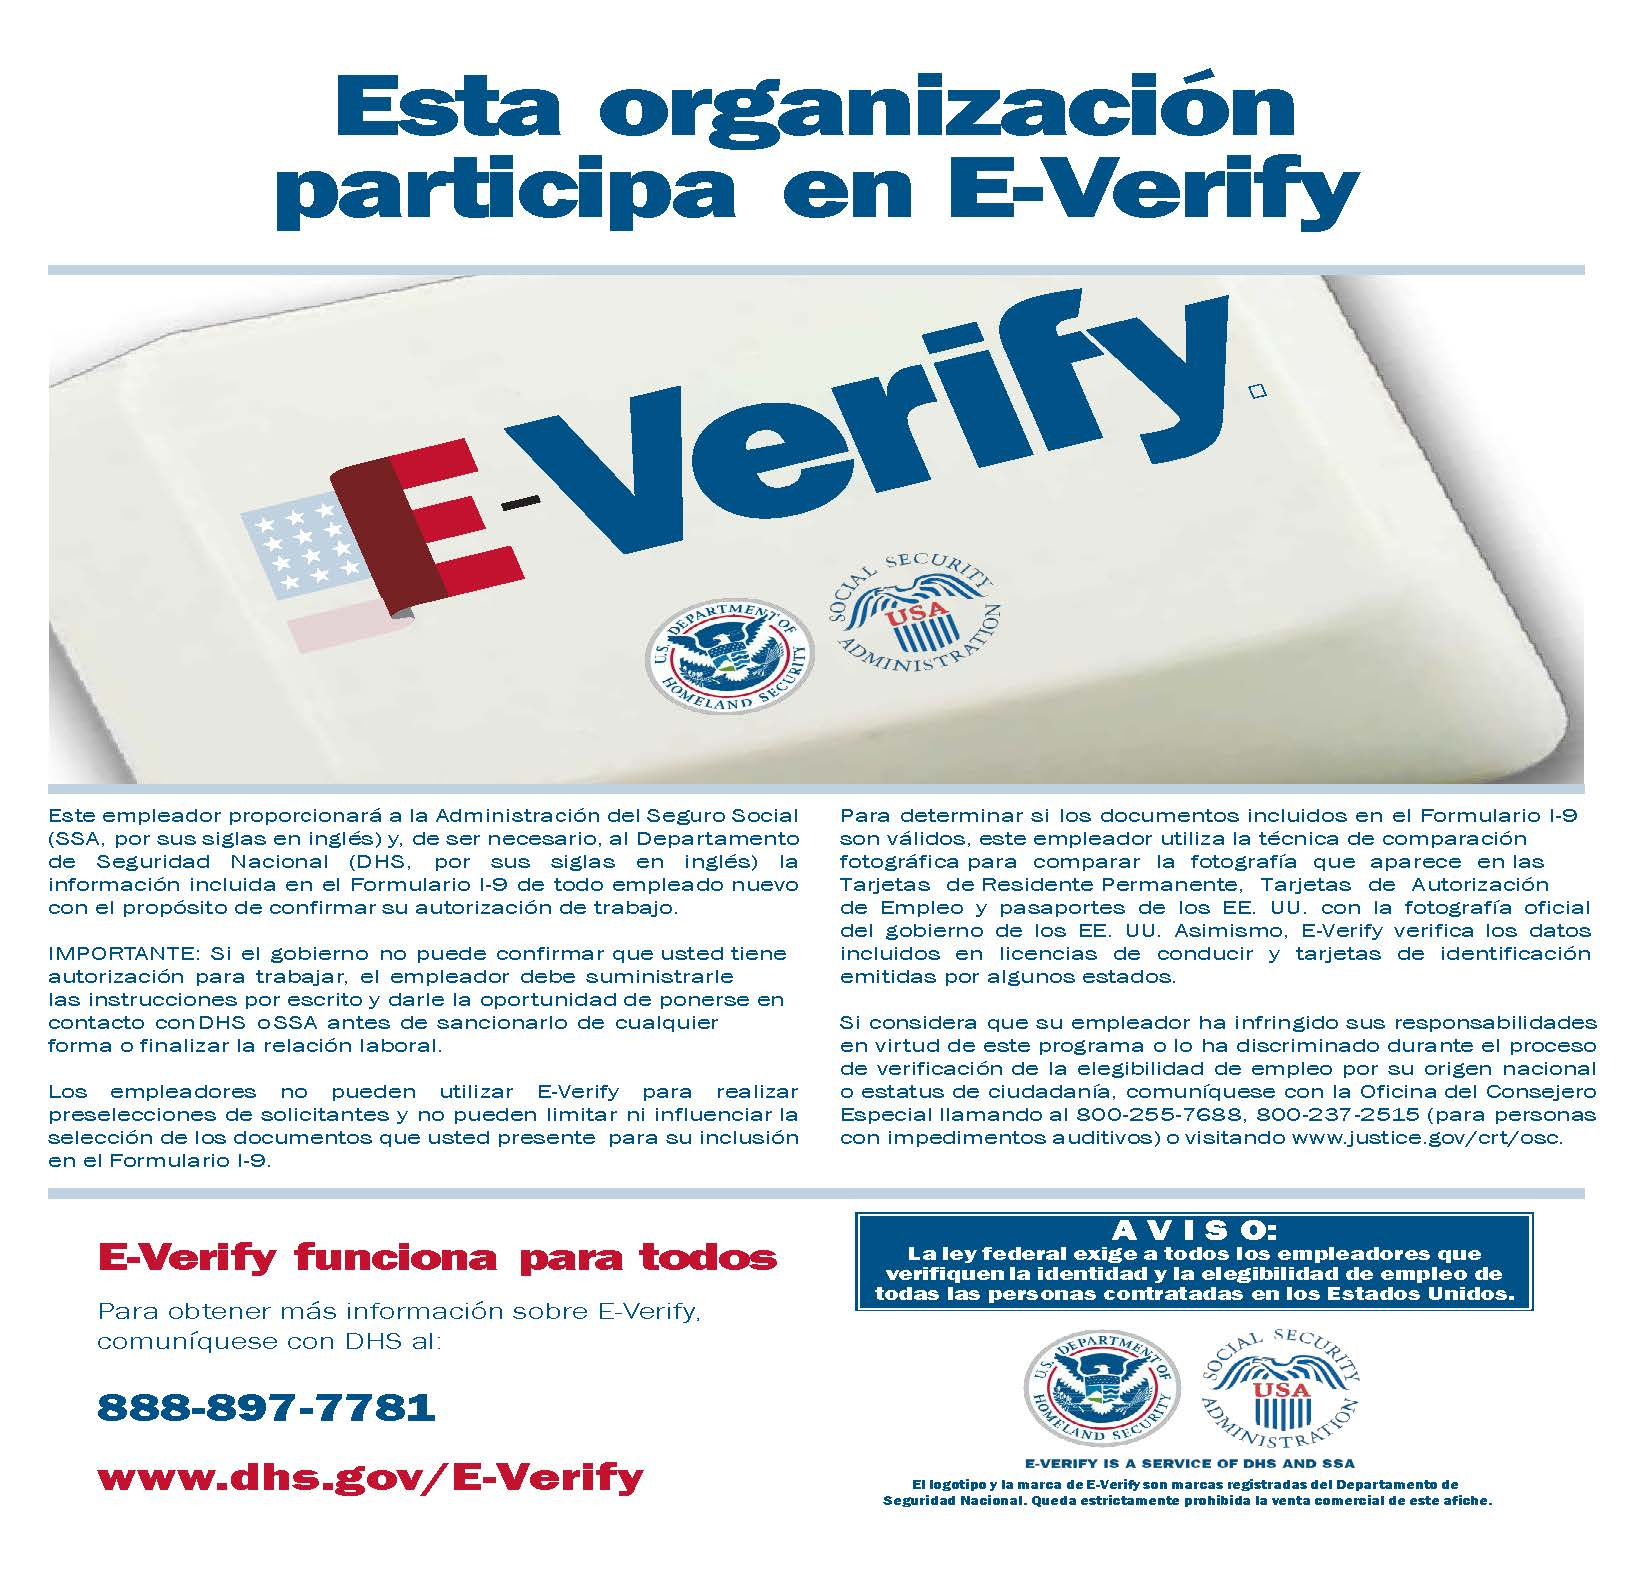 E-Verify_Participation_Poster_ES.jpg